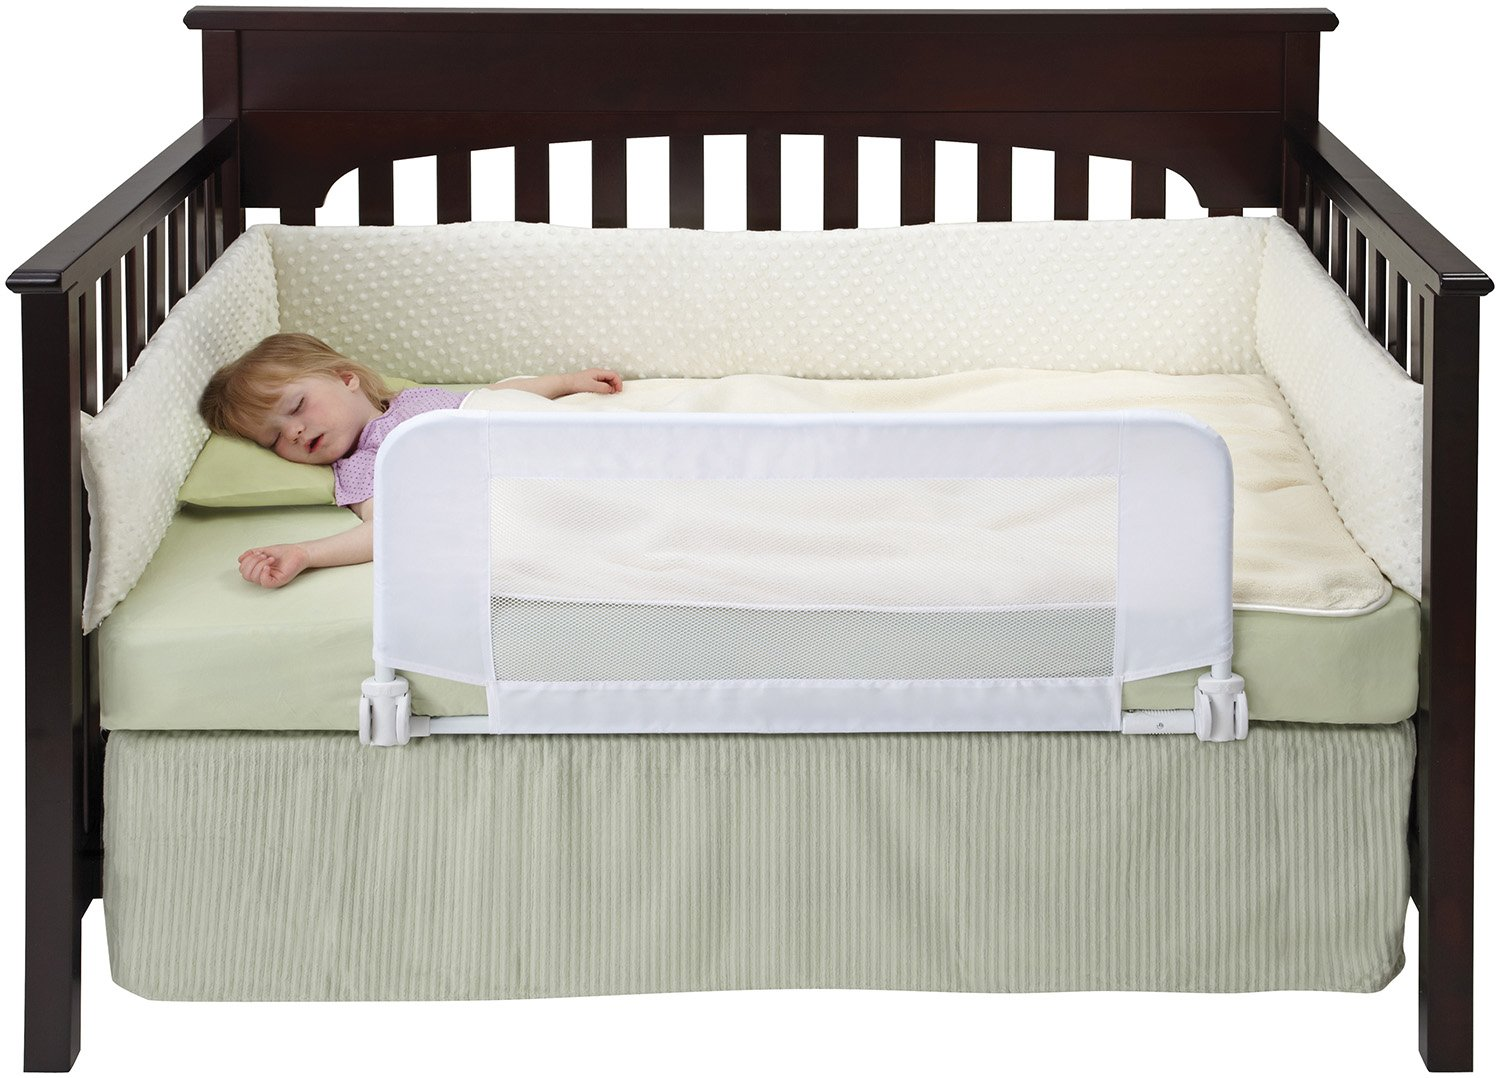 Baby bed at walmart - Baby Bed Gate Walmart Baby Bed Rail Guard Amazon Com Dexbaby Safe Sleeper Convertible Crib